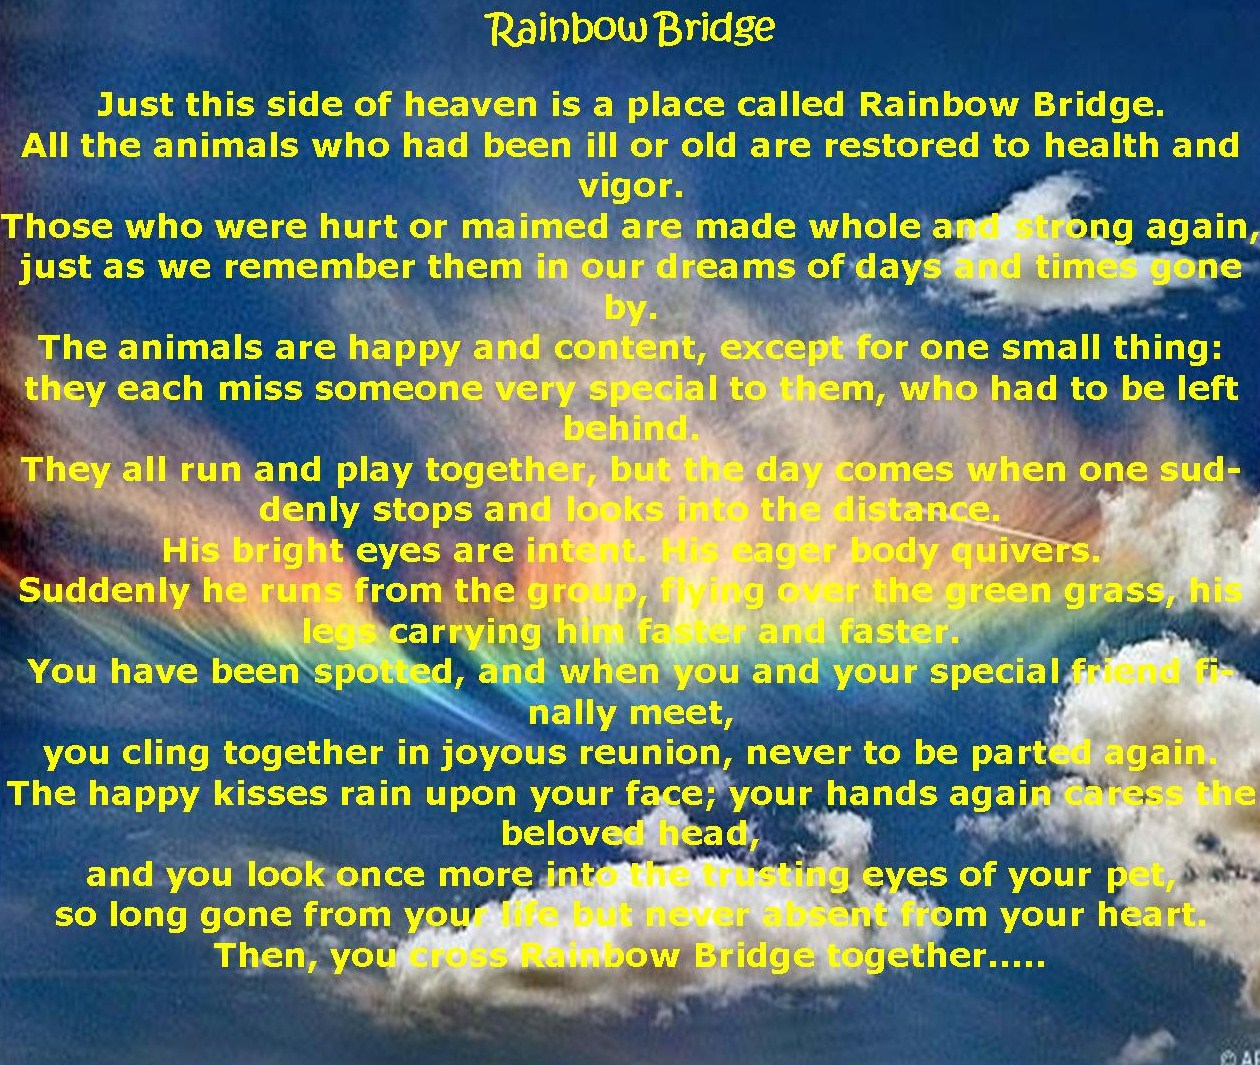 Members that are waiting for us to join them at the rainbow bridge